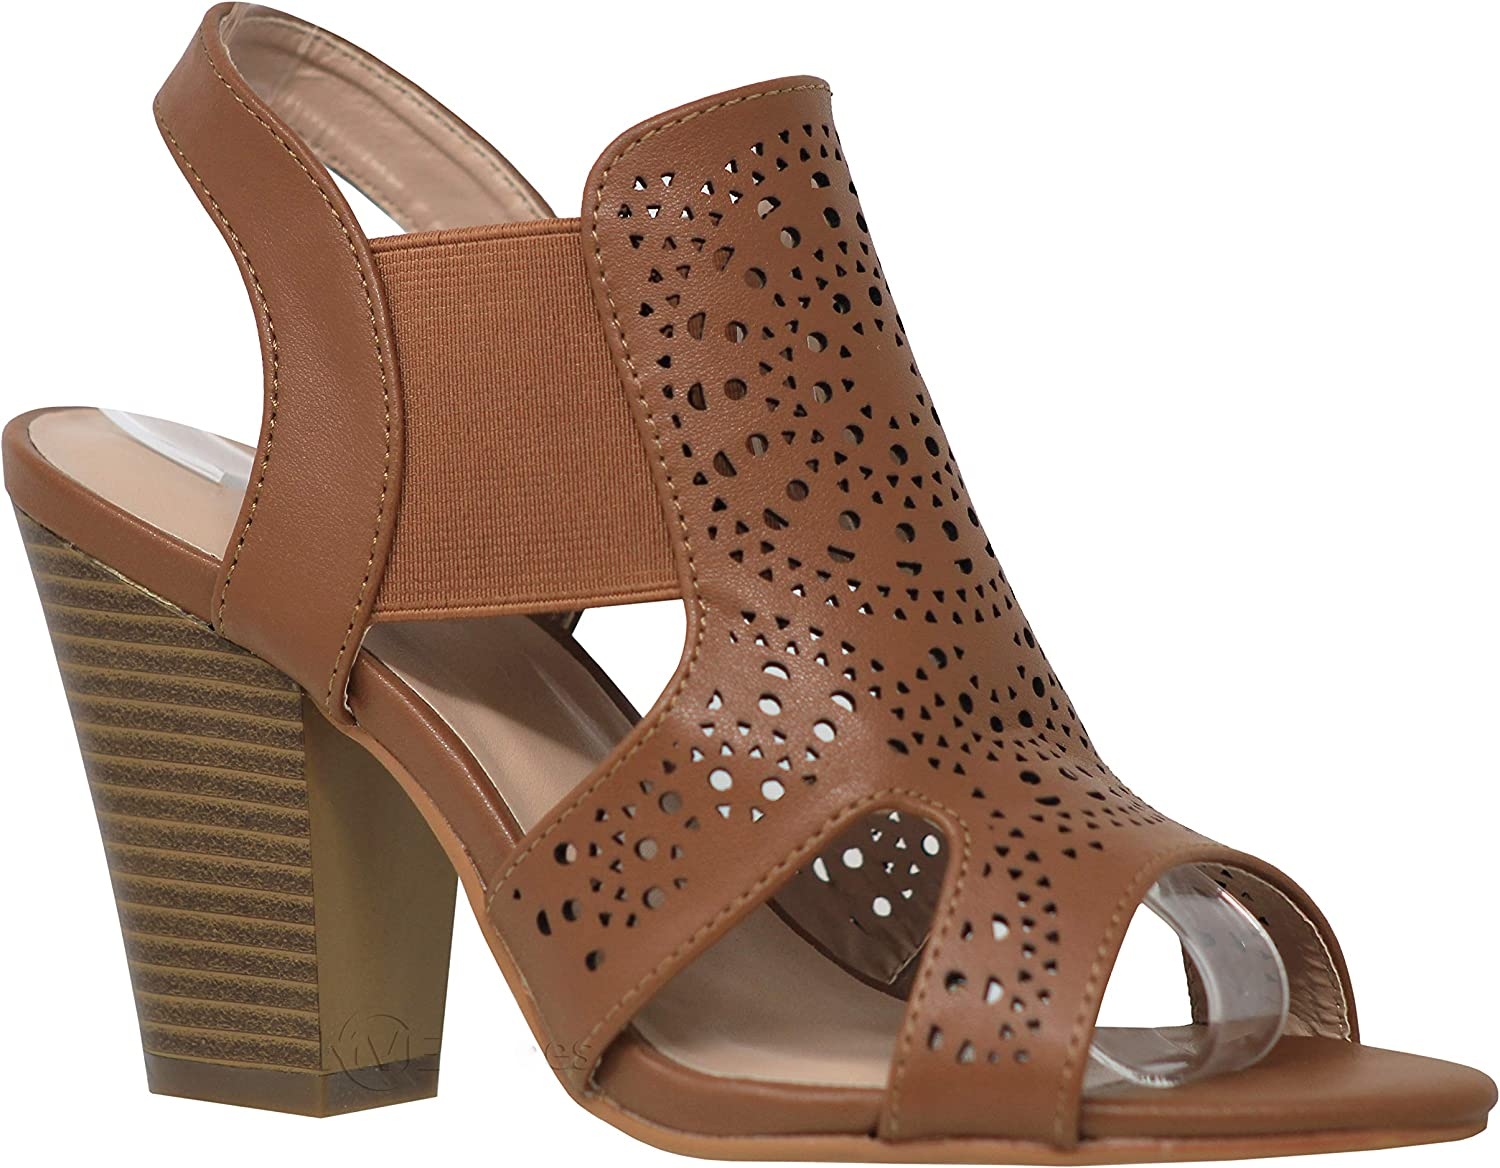 MVE shoes Womens Stylish Comfortable Open Toe Cut Out Heeled Sandal